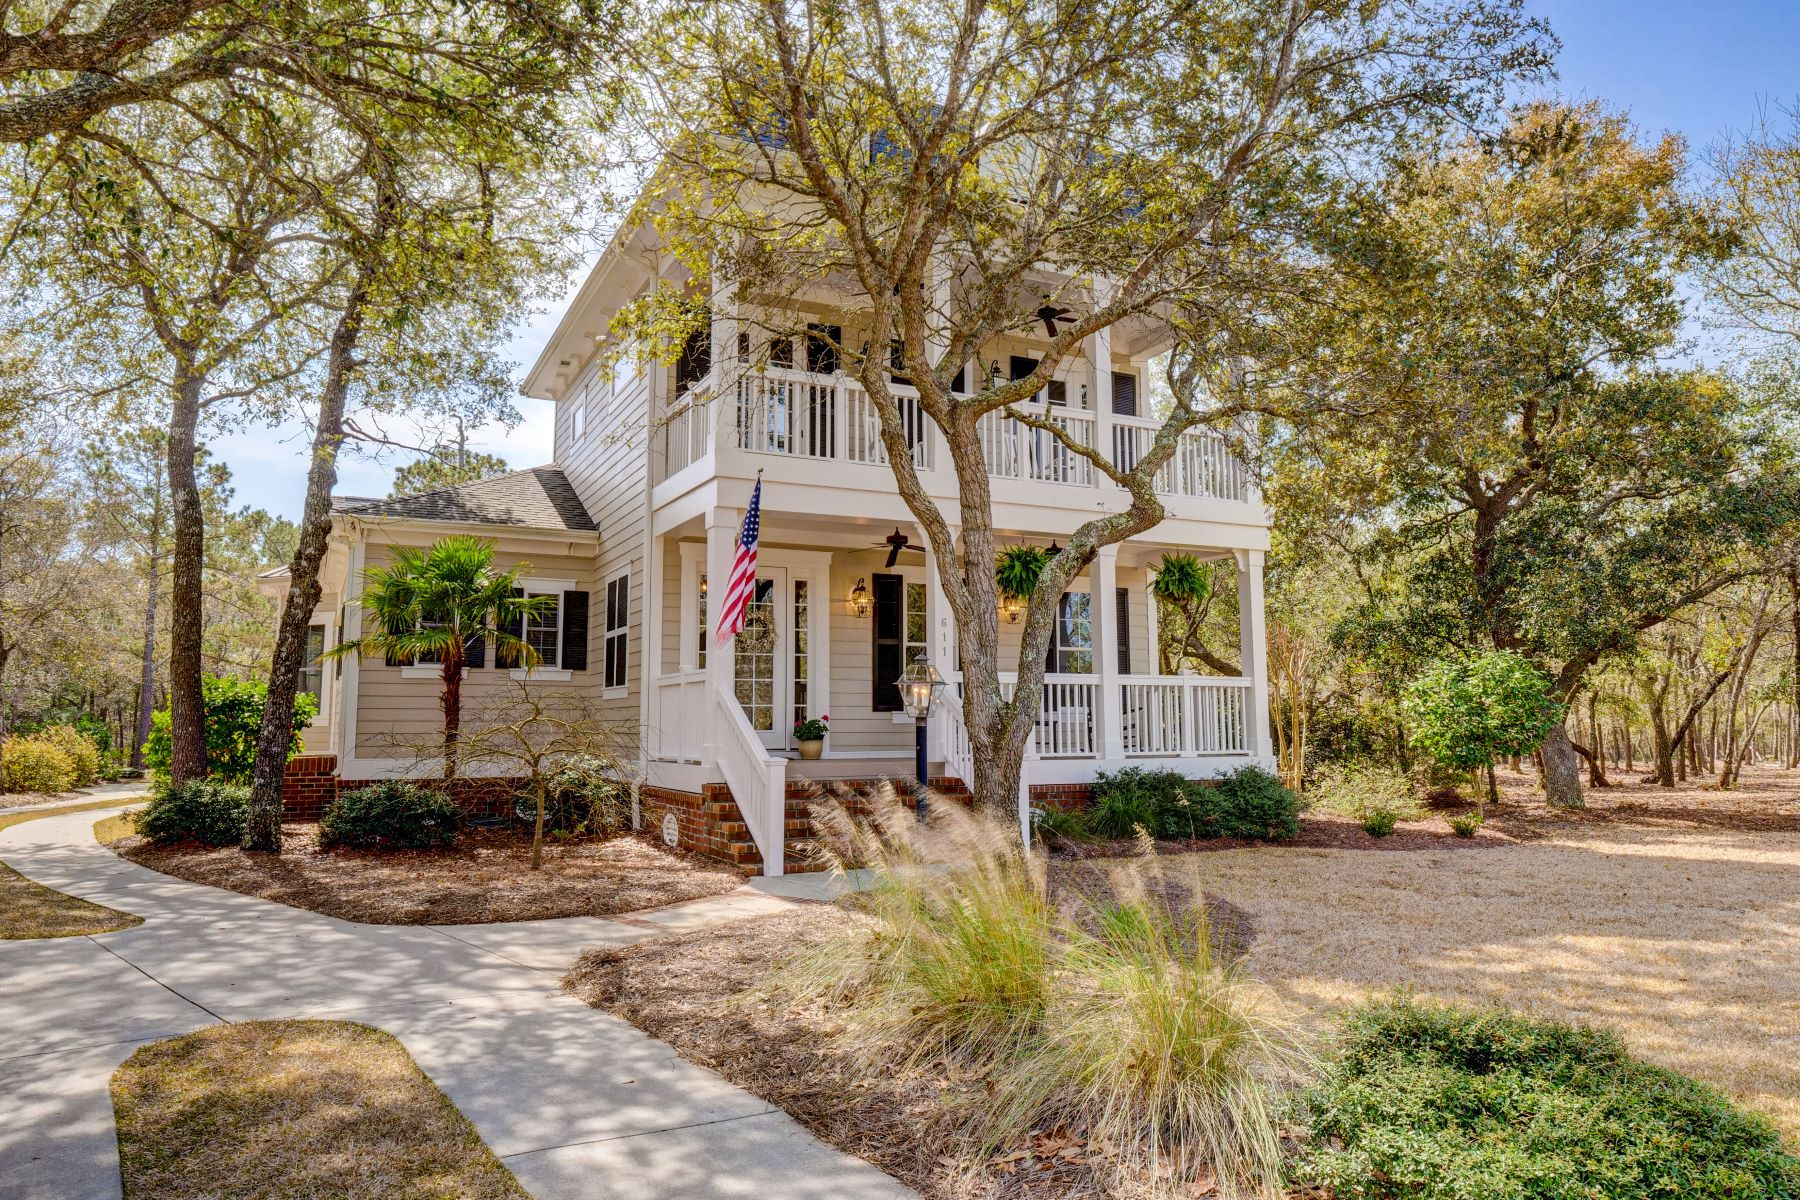 Single Family Homes for Sale at Located a beautifully planned waterfront community 611 Seascape Blvd S SW Supply, North Carolina 28462 United States